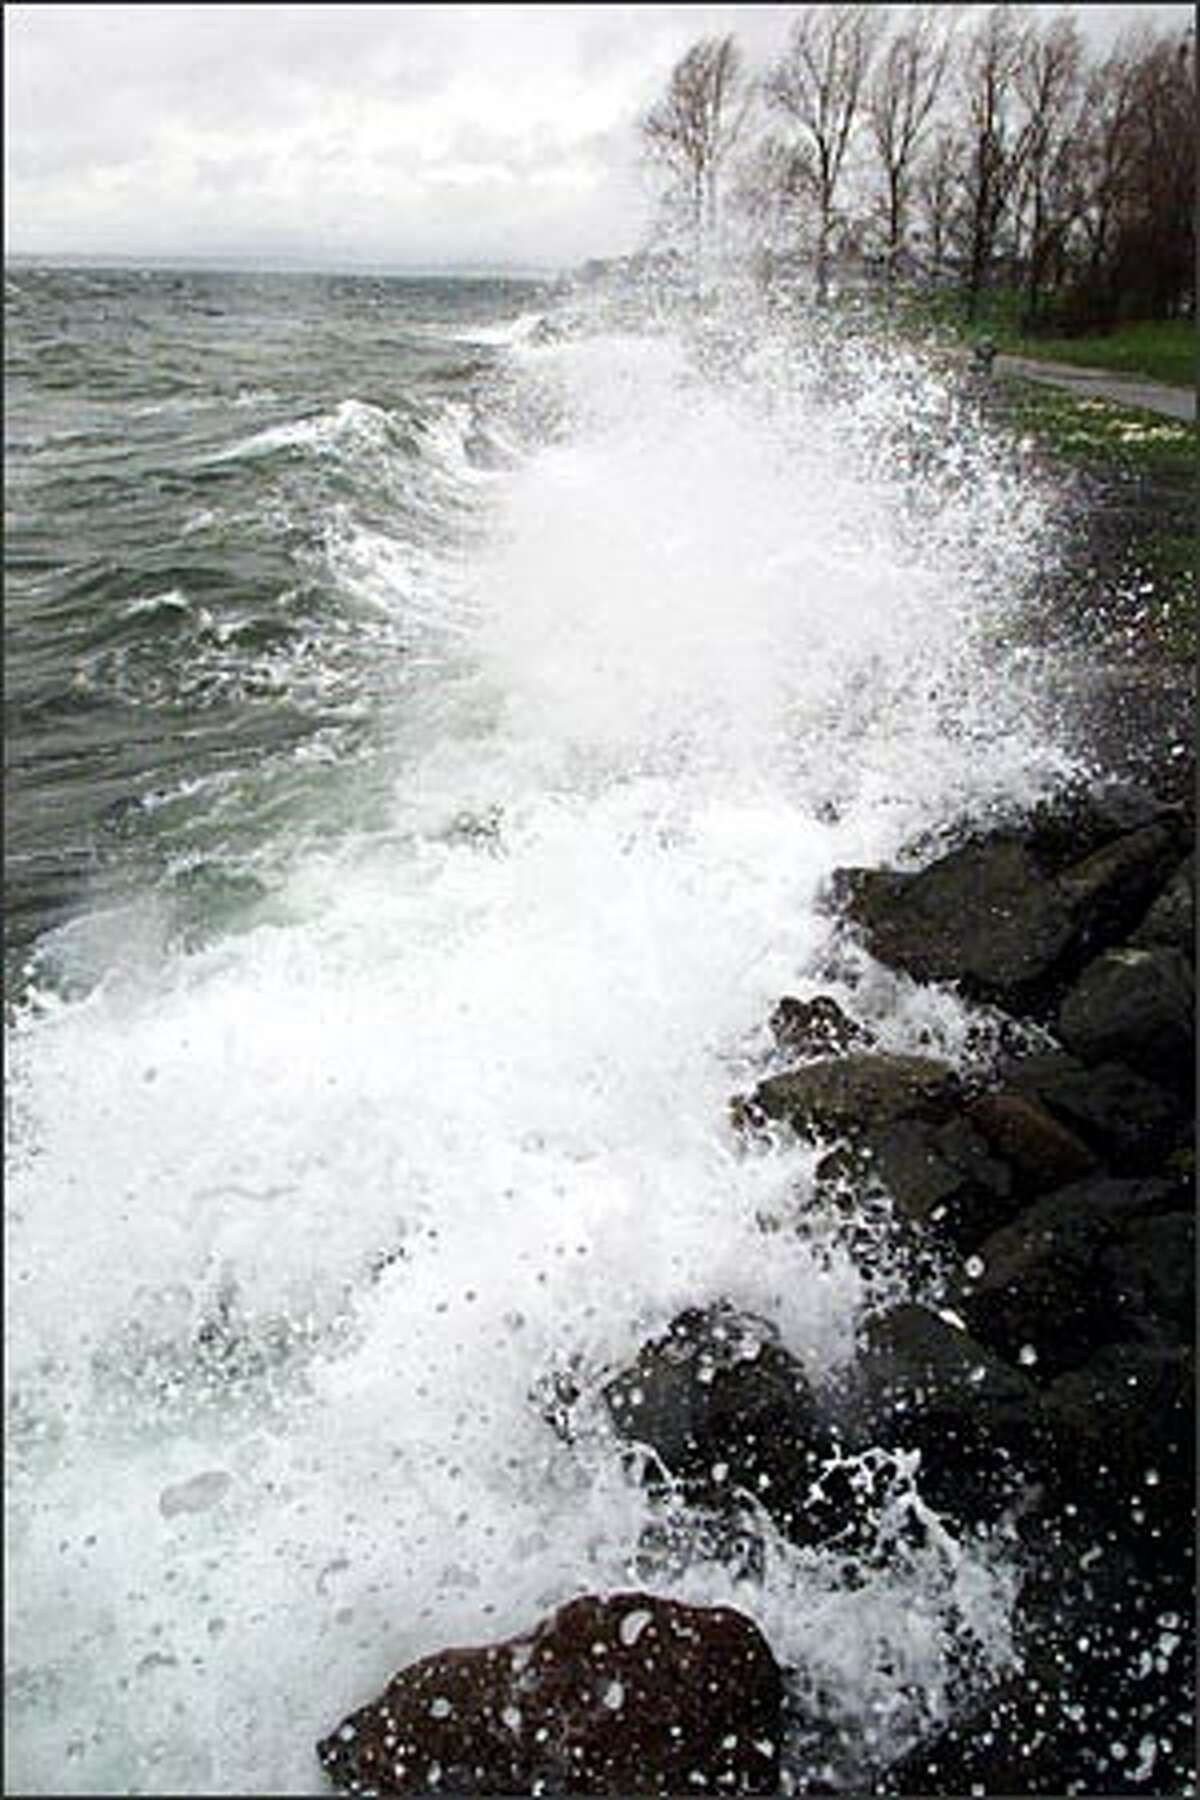 Strong winds and a high tide made for big waves that crashed into the shoreline of Myrtle Edwards Park in Seattle Friday.